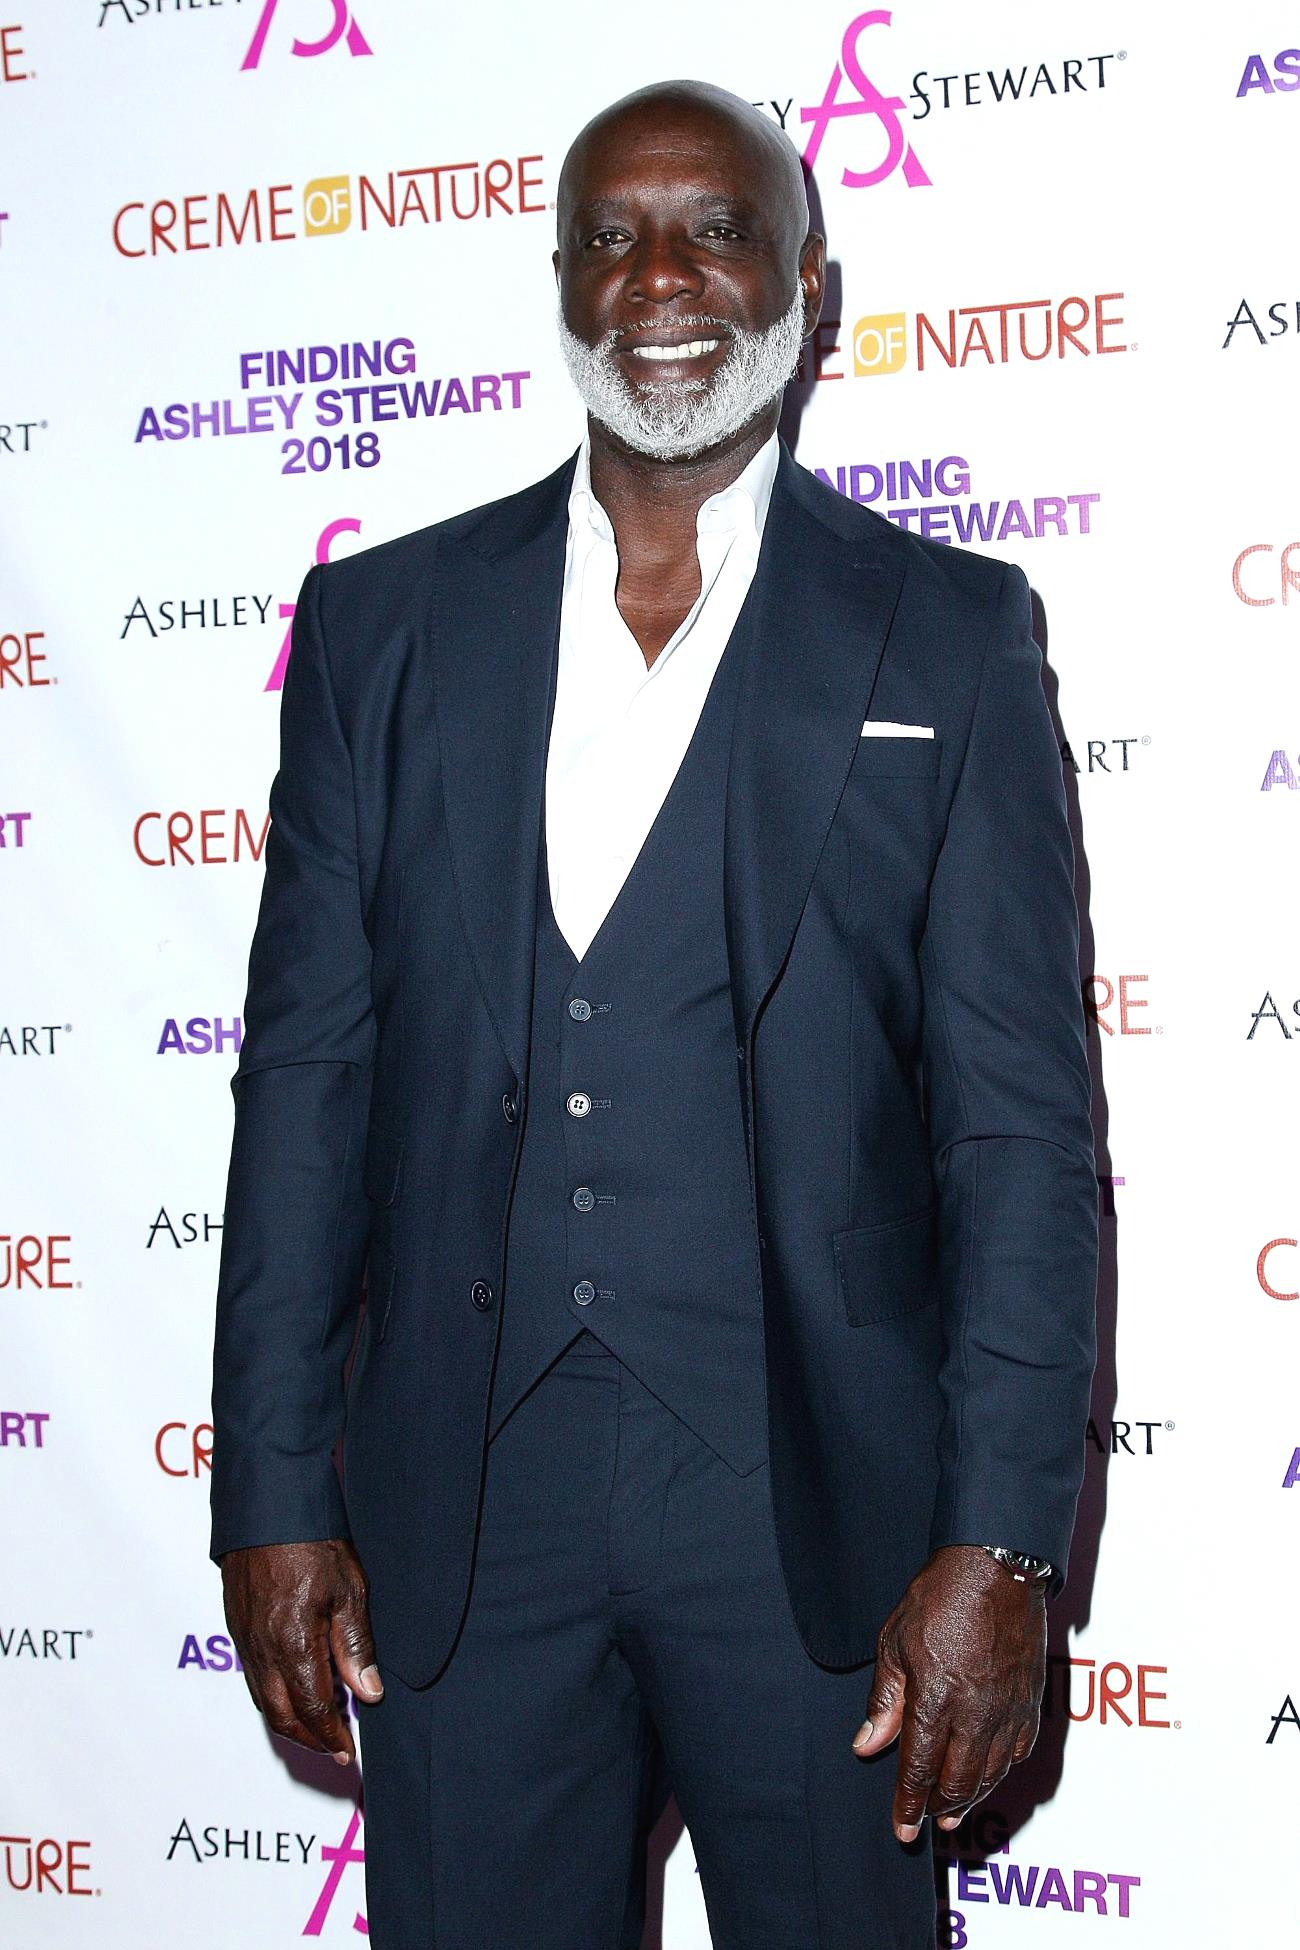 Ex RHOA Star Peter Thomas Released from Jail After Resolving Bounced Check Dispute